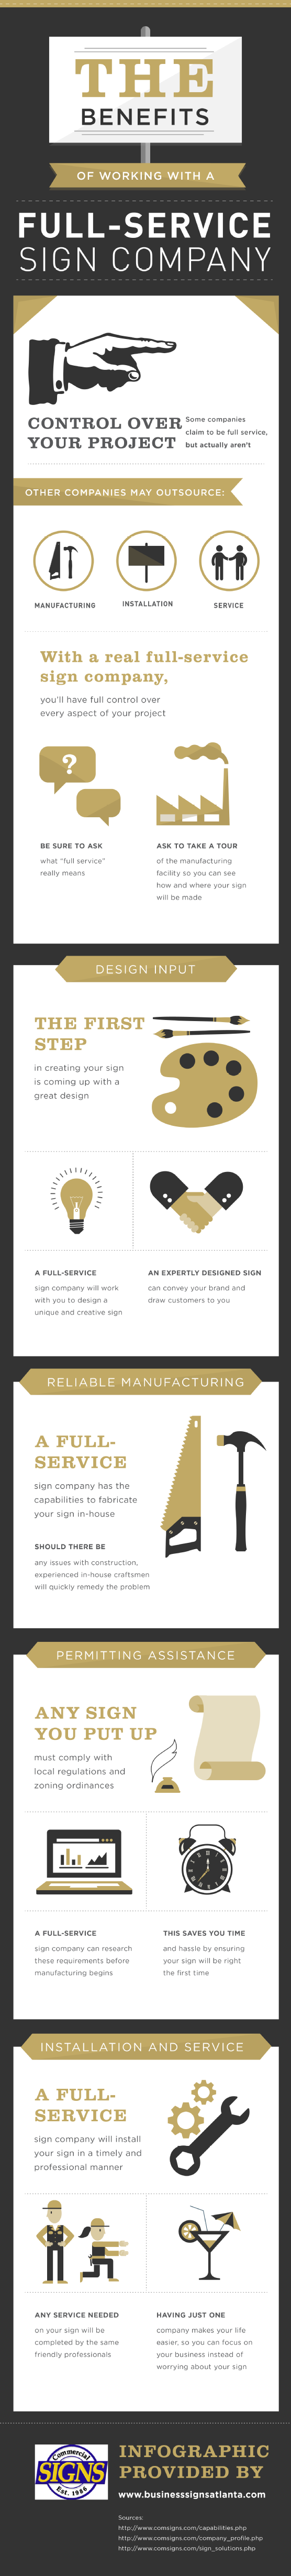 the-benefits-of-working-with-a-fullservice-sign-company_5256e9d21e39e